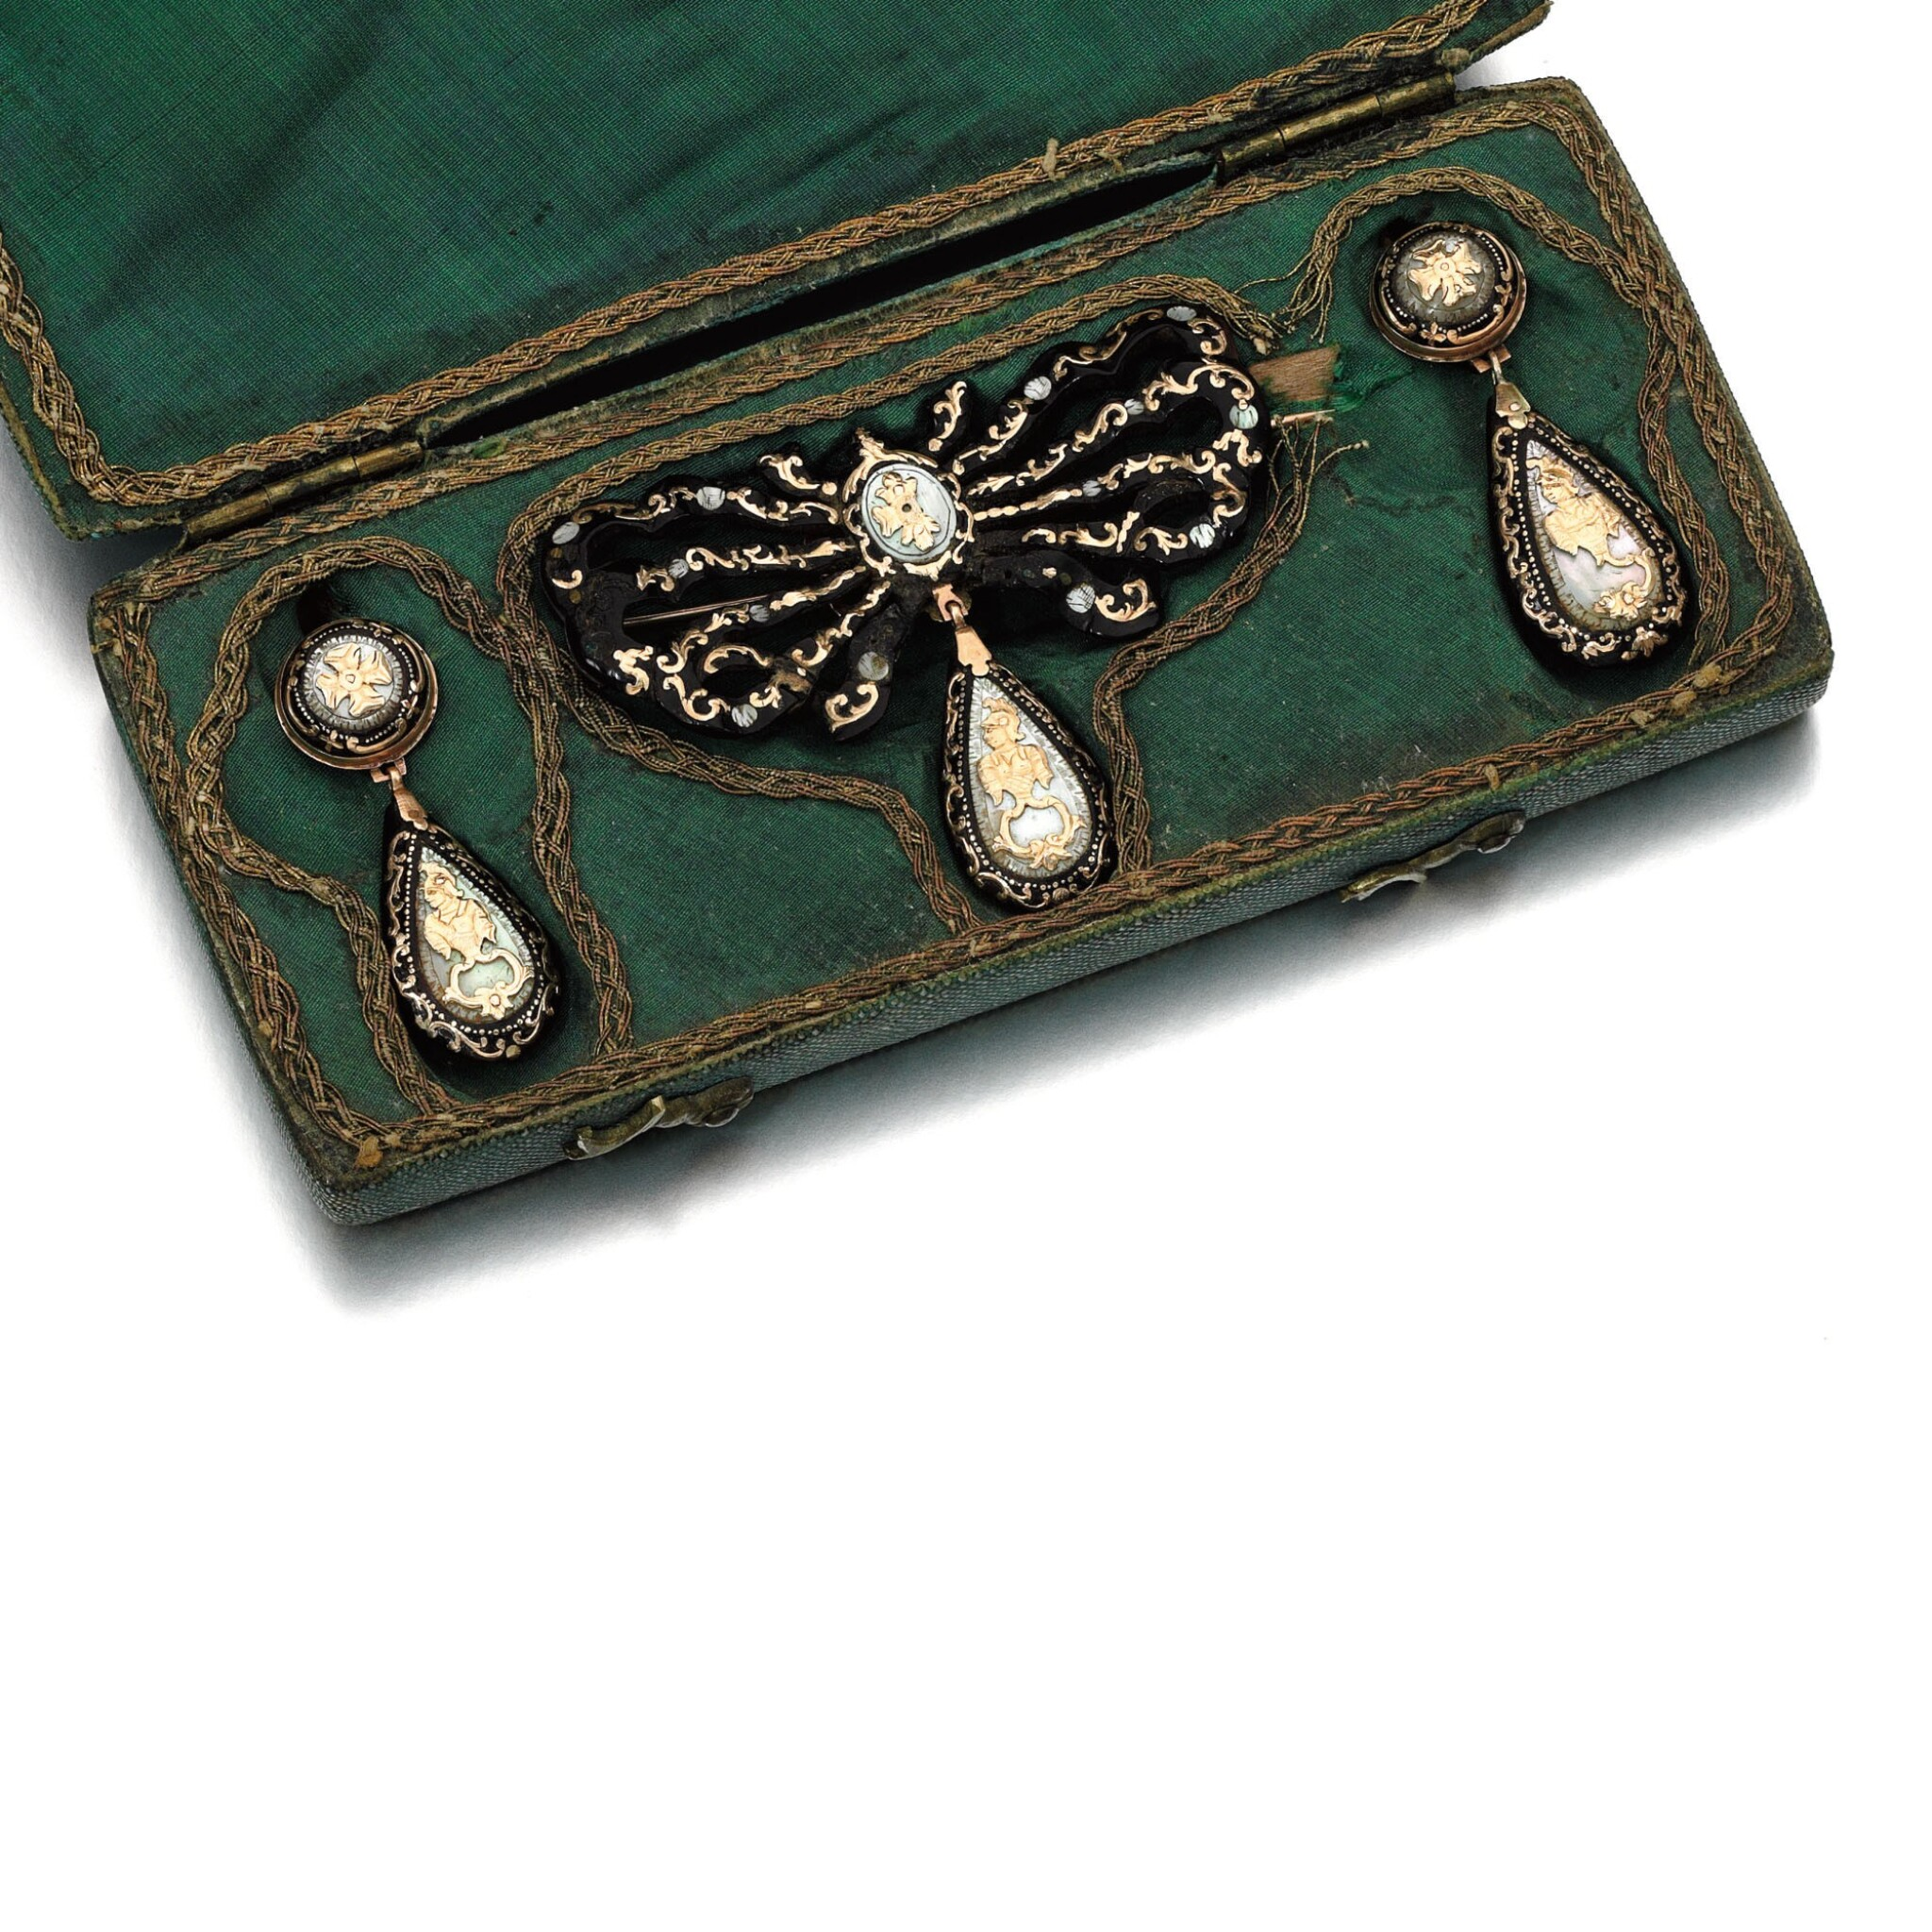 TORTOISESHELL AND MOTHER-OF-PEARL DEMI-PARURE, 18TH CENTURY